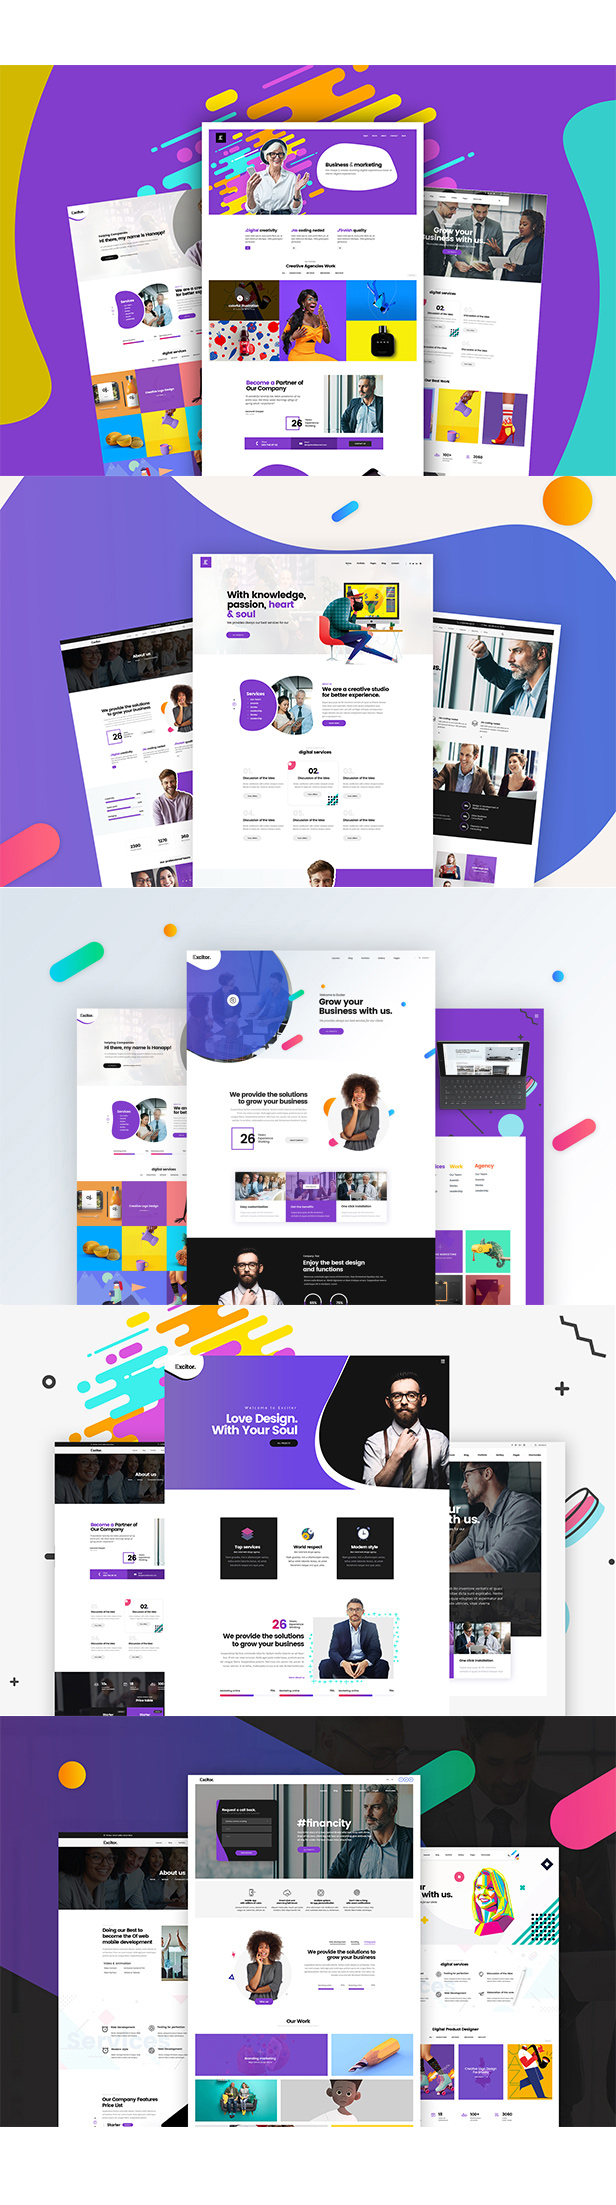 Excitor - Creative & Clean Multipurpose Business, Portfolio, Agencies PSD Template - 1